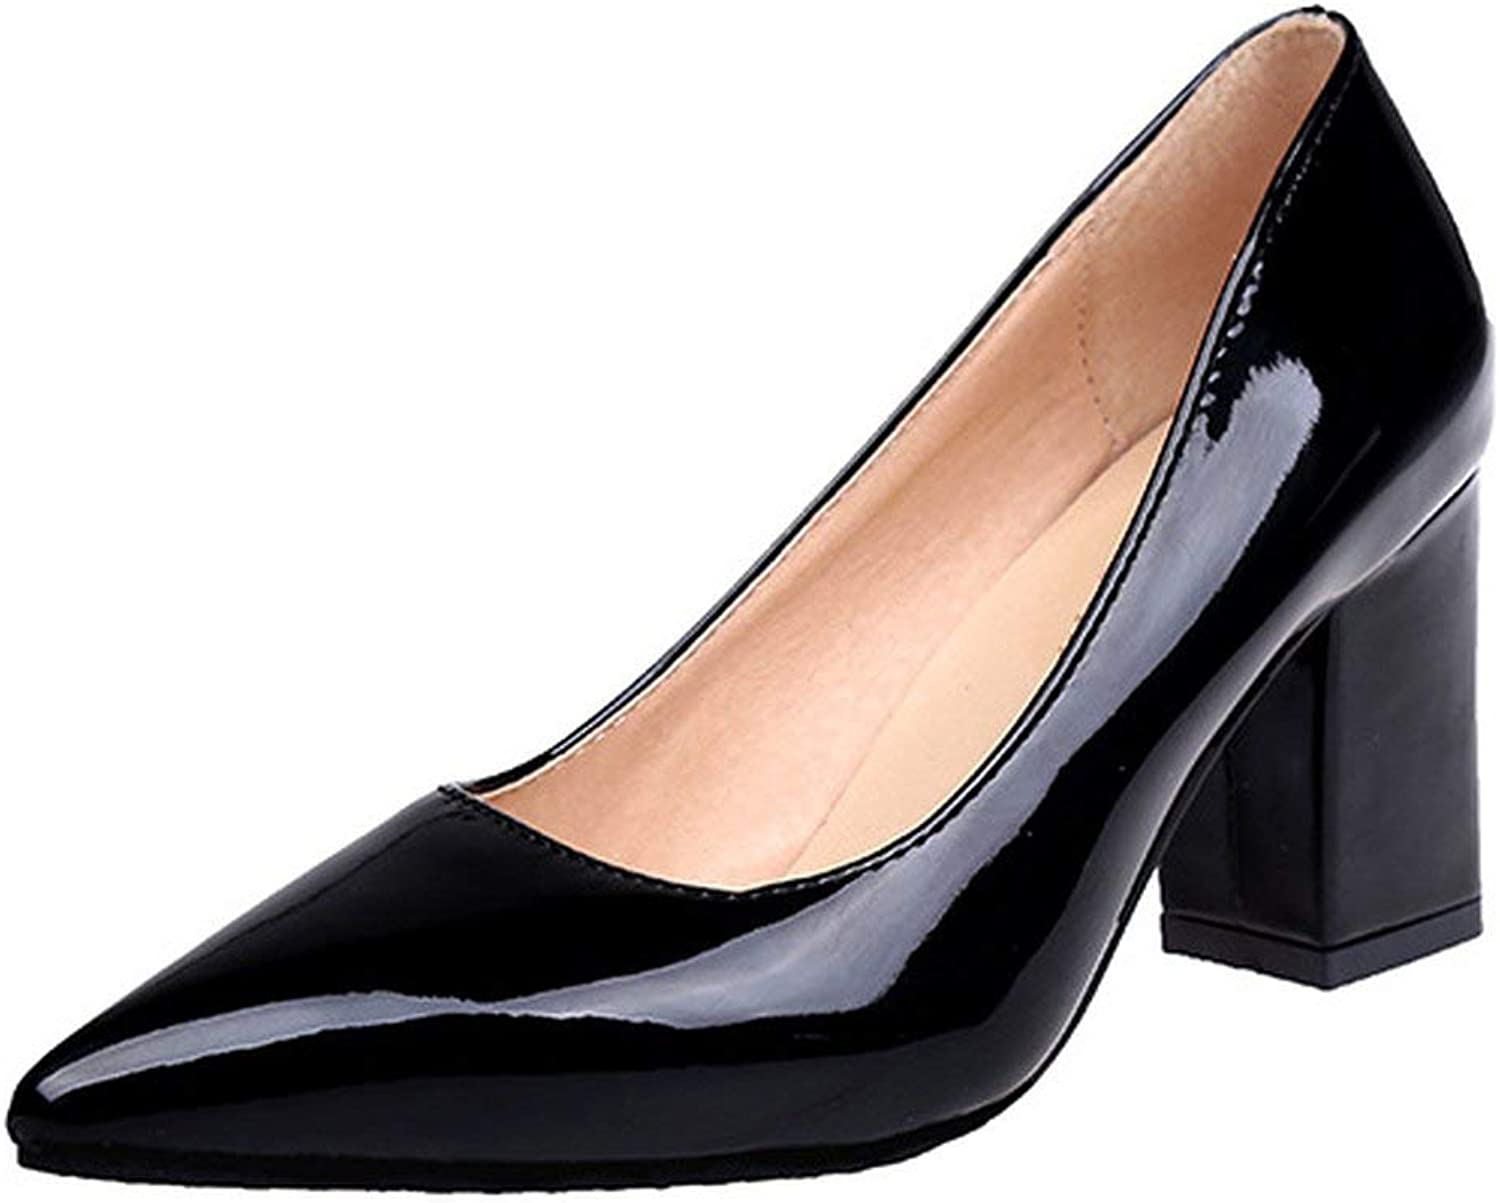 Women Pumps Black High Heels 7.5cm Lady Patent Leather Thick Pointed Single shoes